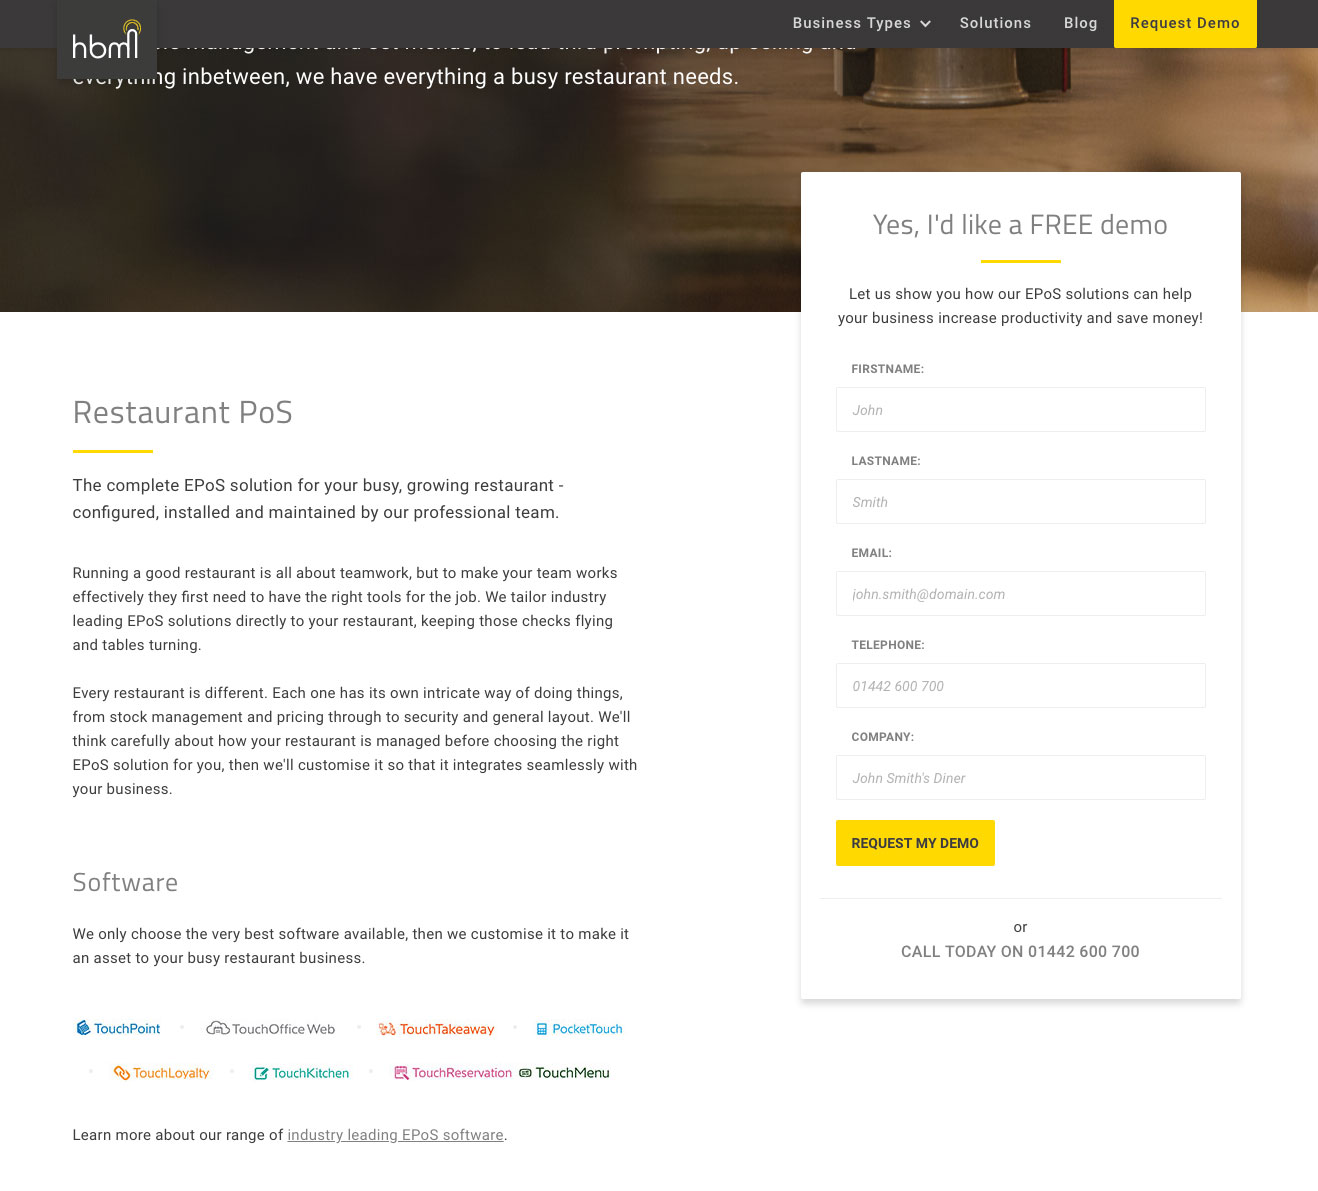 HBM restaurant landing page website screenshot